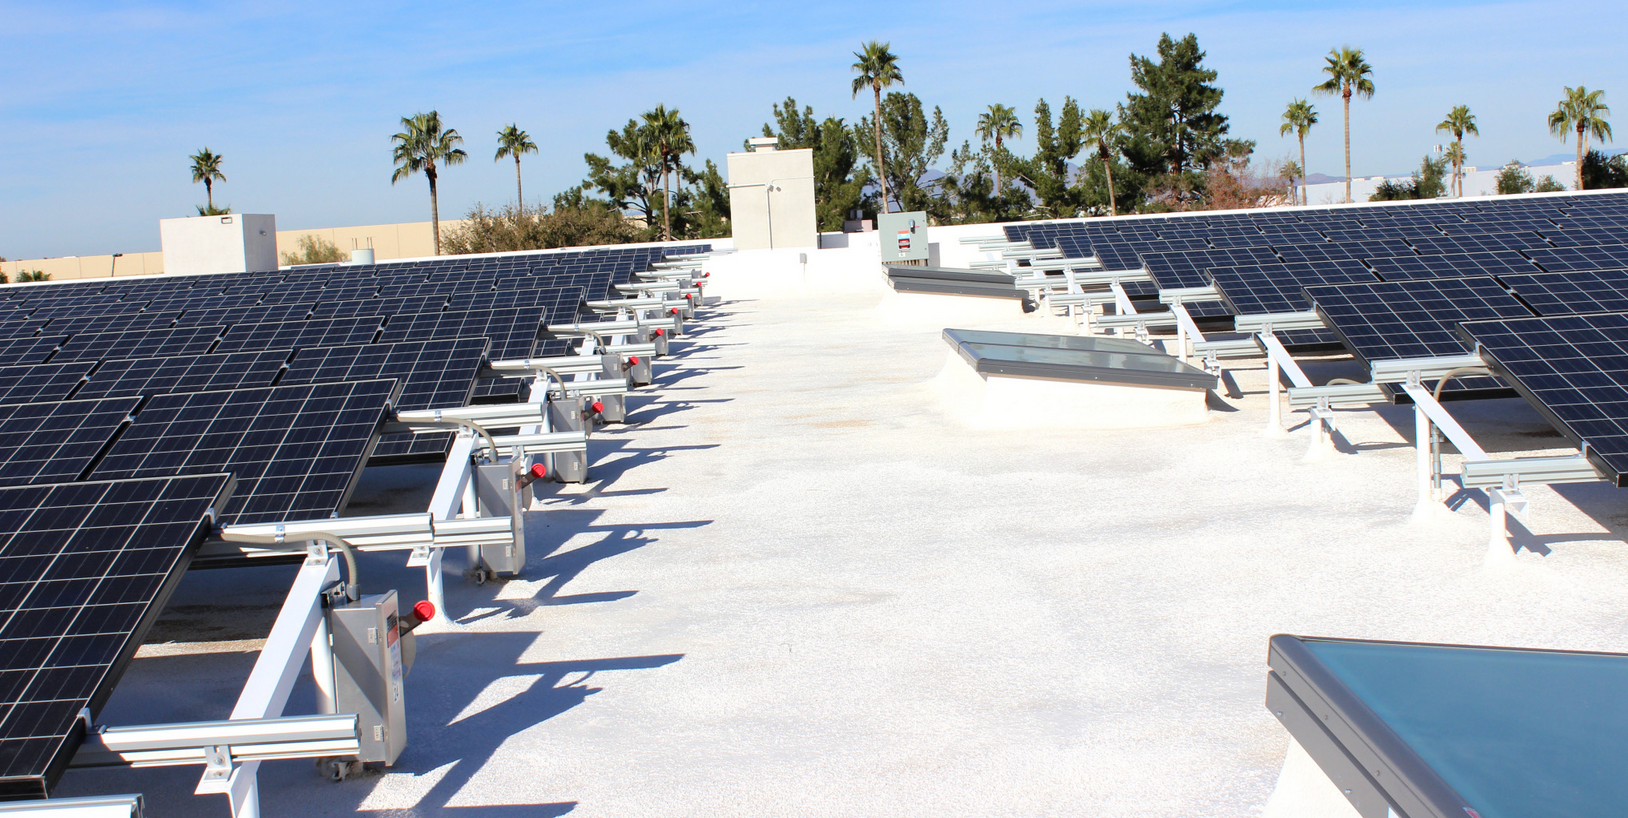 Spray polyurethane foam and photovoltaic systems are increasingly utilized together as a joint solution for energy savings.